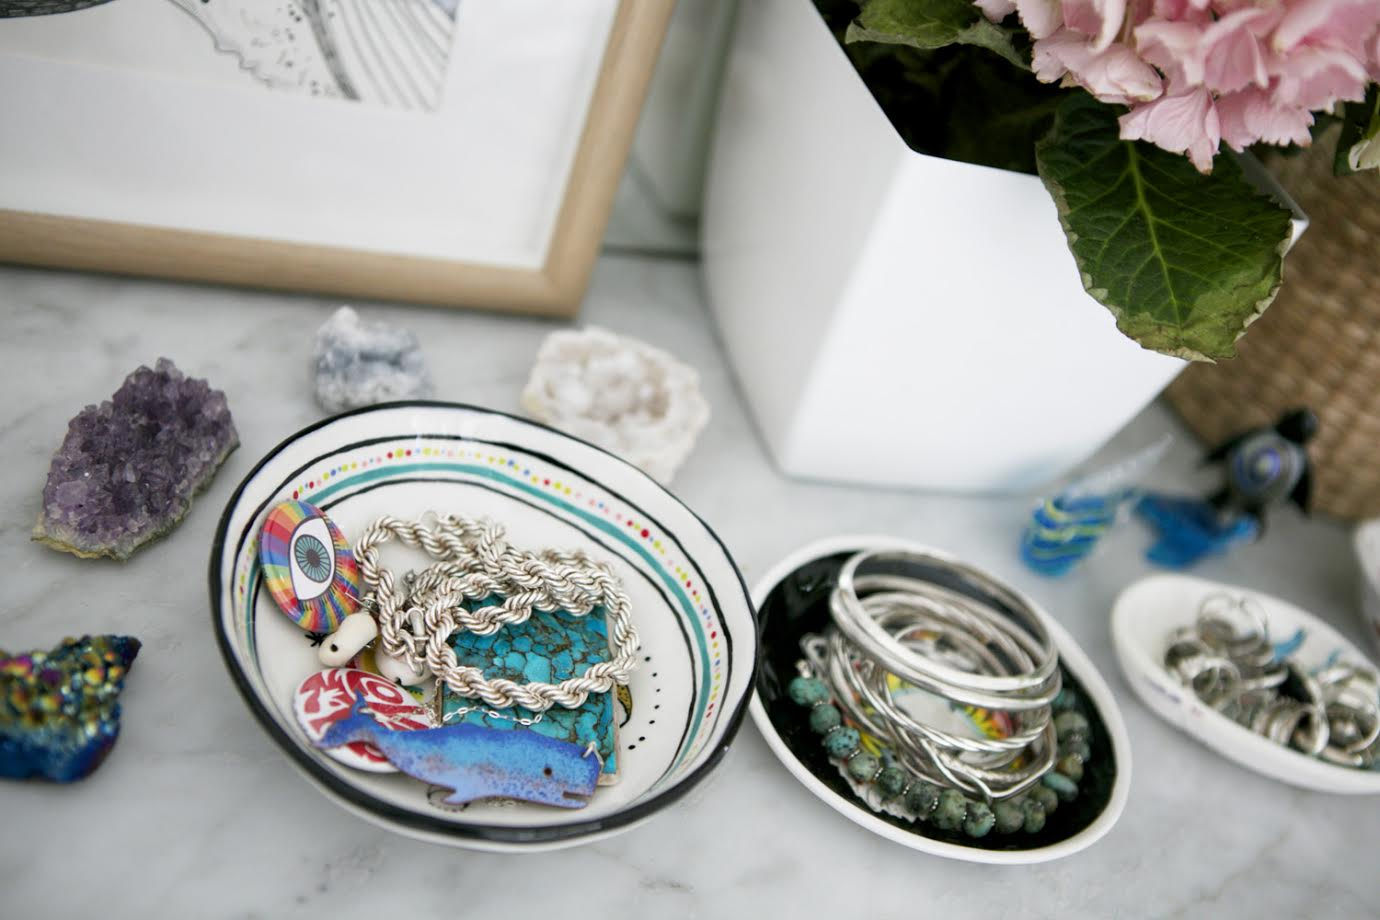 Jewellery Dish A Creative Home..with Artist Michelle Fleur in Perth, Australia // Surelysimple.com